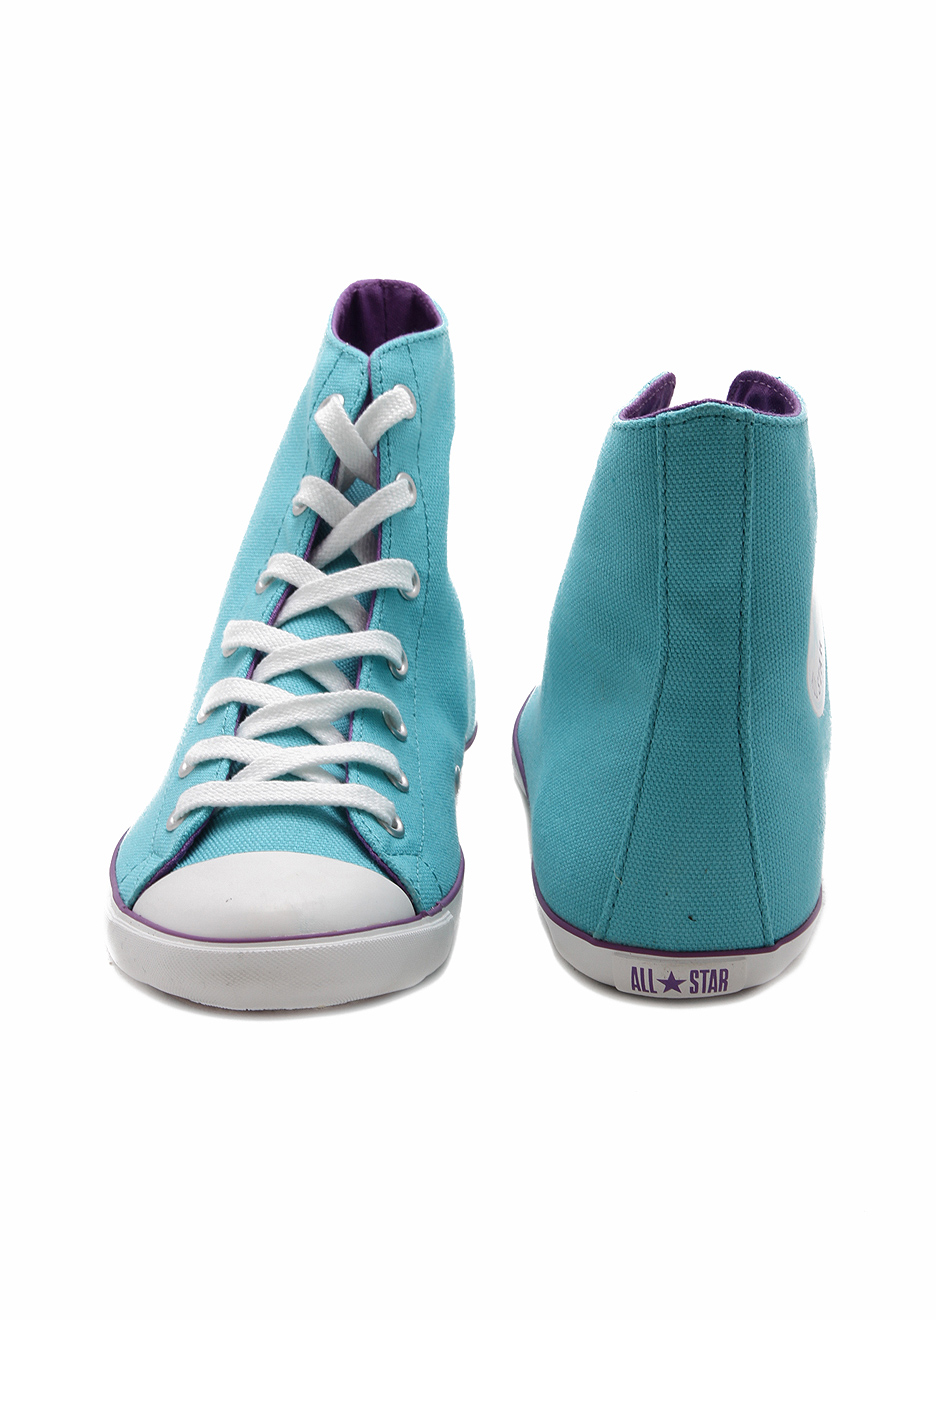 converse all star light hi can blue white girl shoes. Black Bedroom Furniture Sets. Home Design Ideas